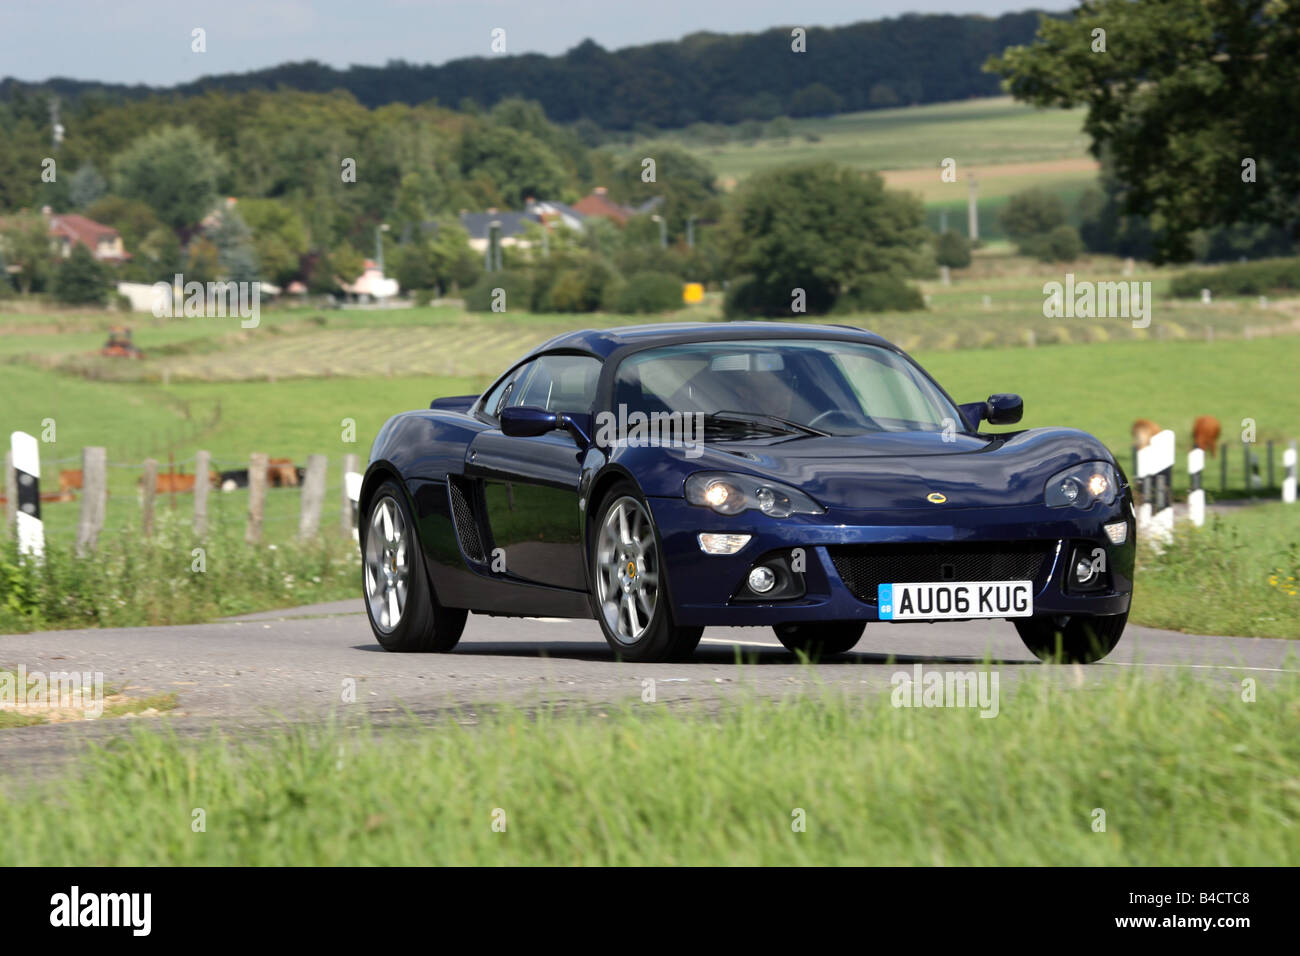 http://c8.alamy.com/comp/B4CTC8/lotus-europa-s-model-year-2006-blue-moving-diagonal-from-the-front-B4CTC8.jpg